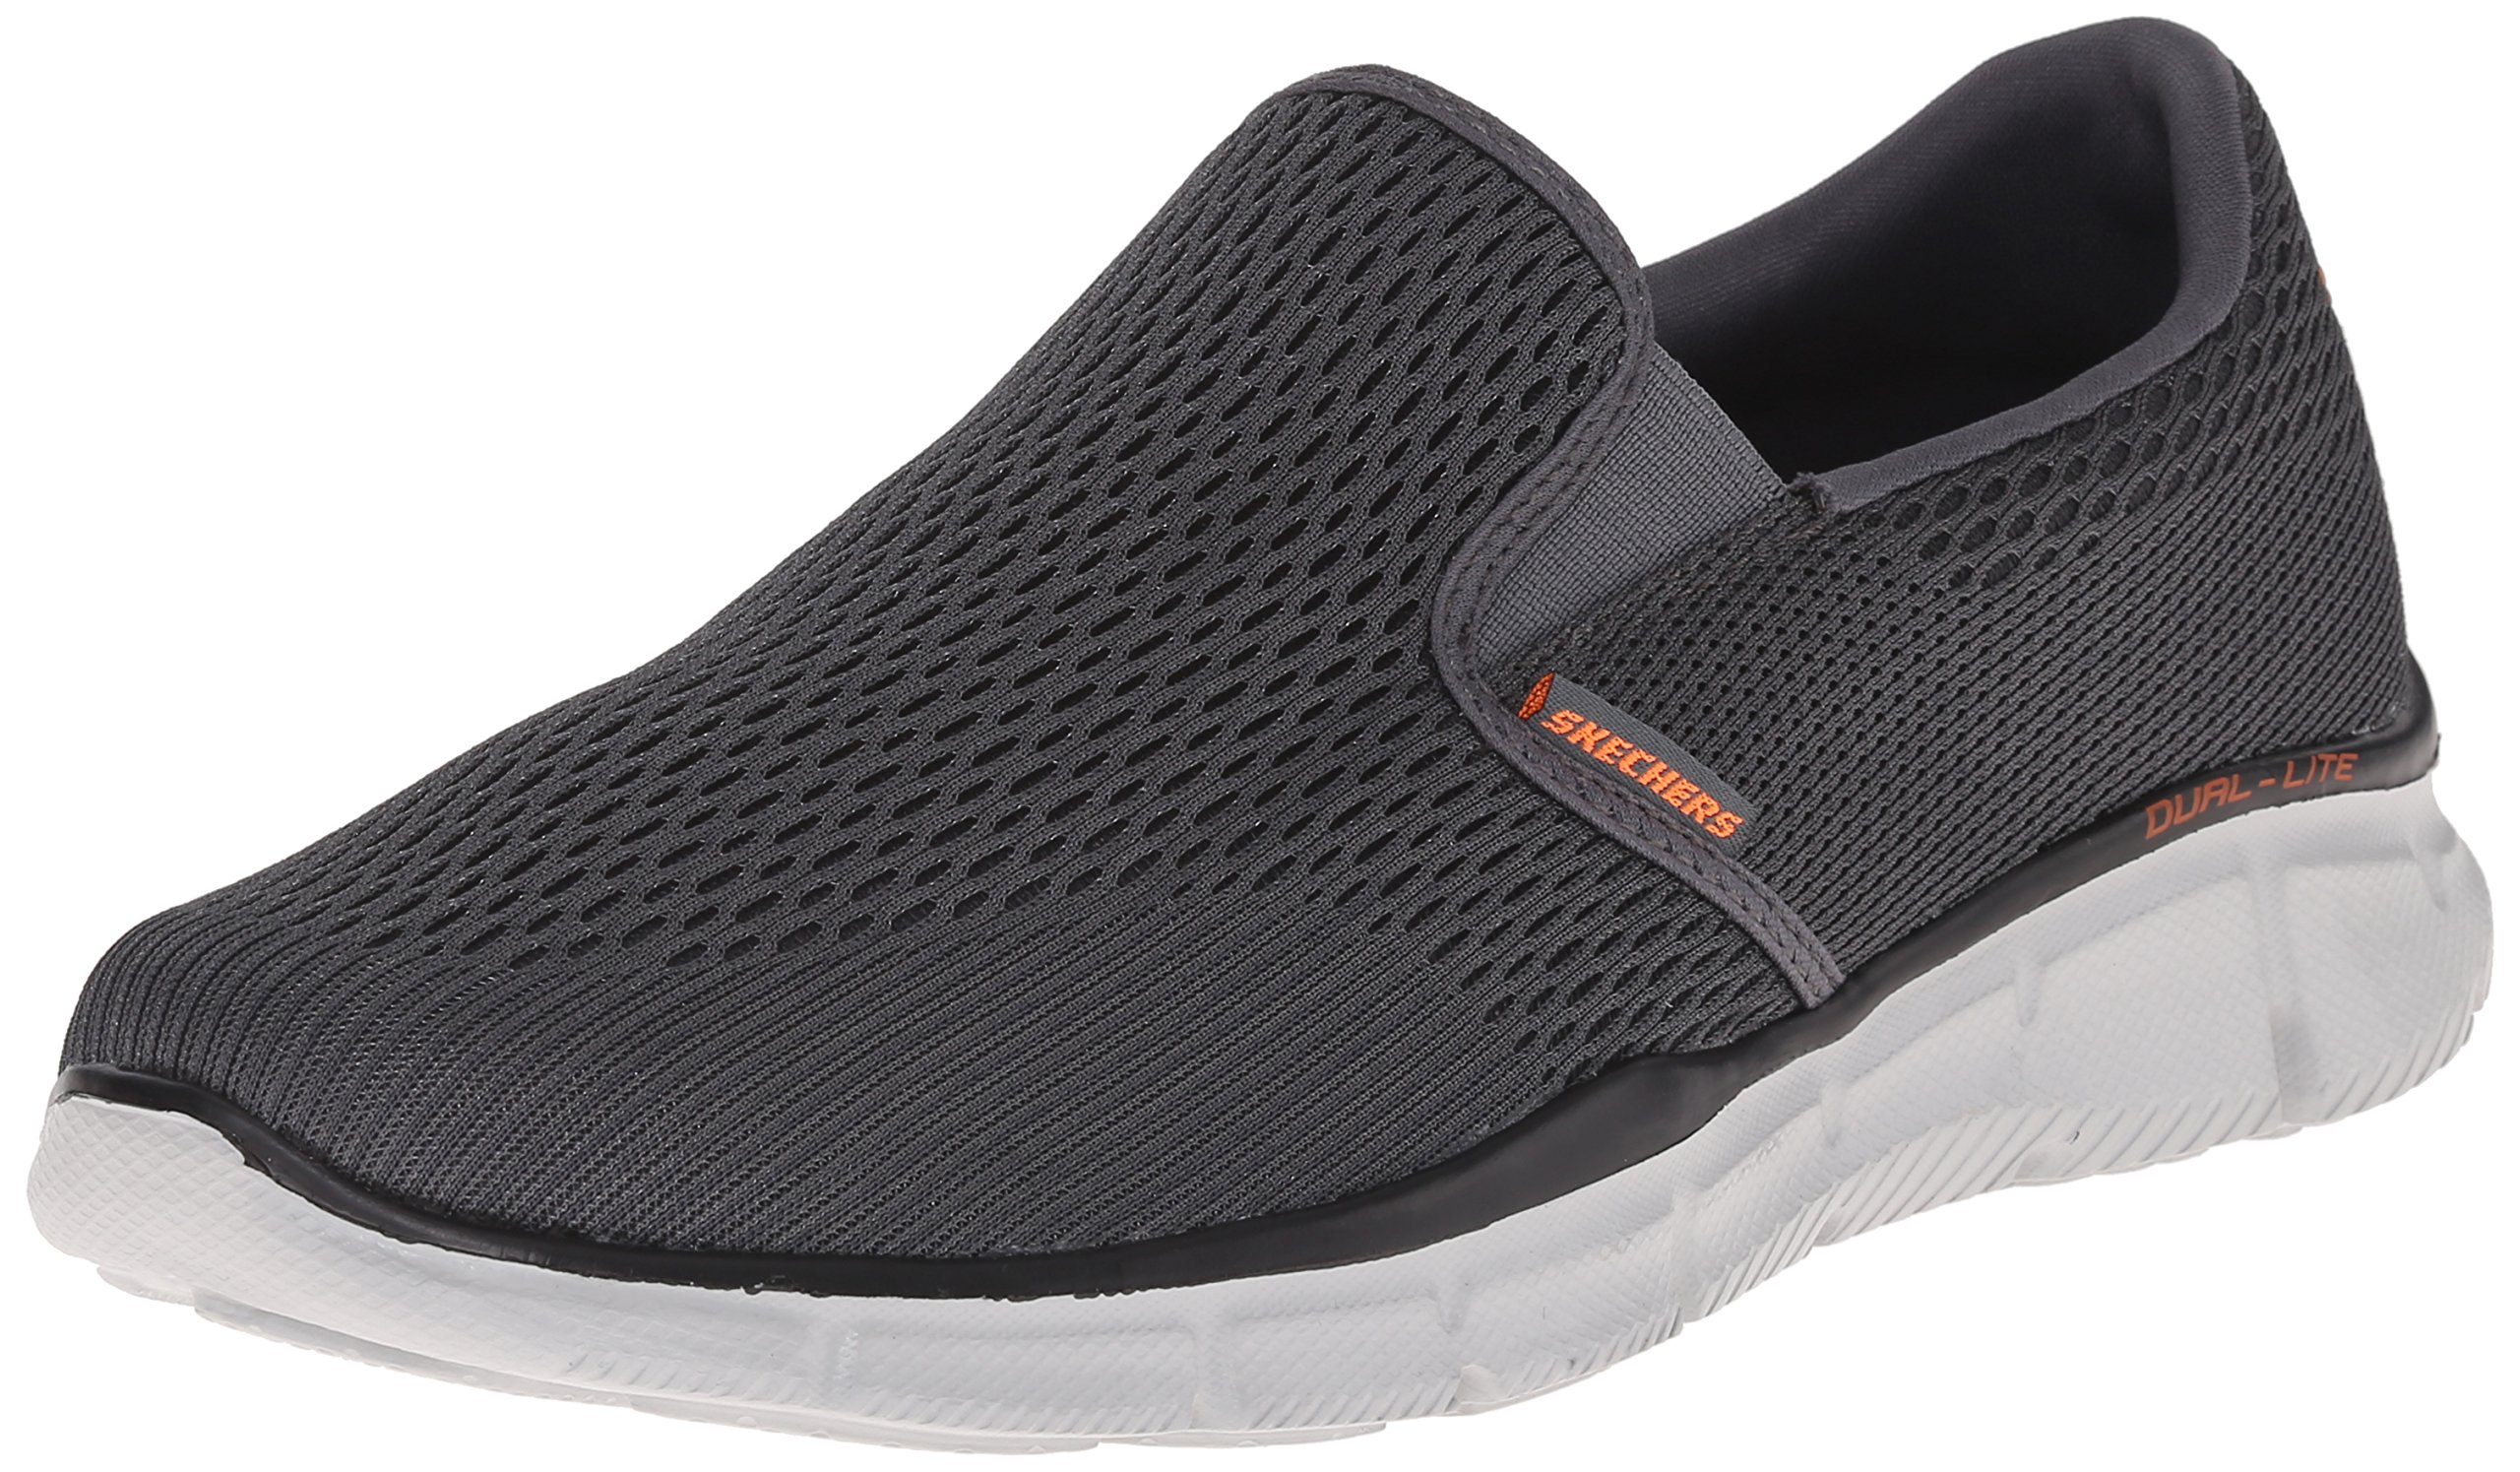 Skechers Men's Equalizer Double Play Slip-On Loafer,Charcoal/Orange,11 M US by Skechers